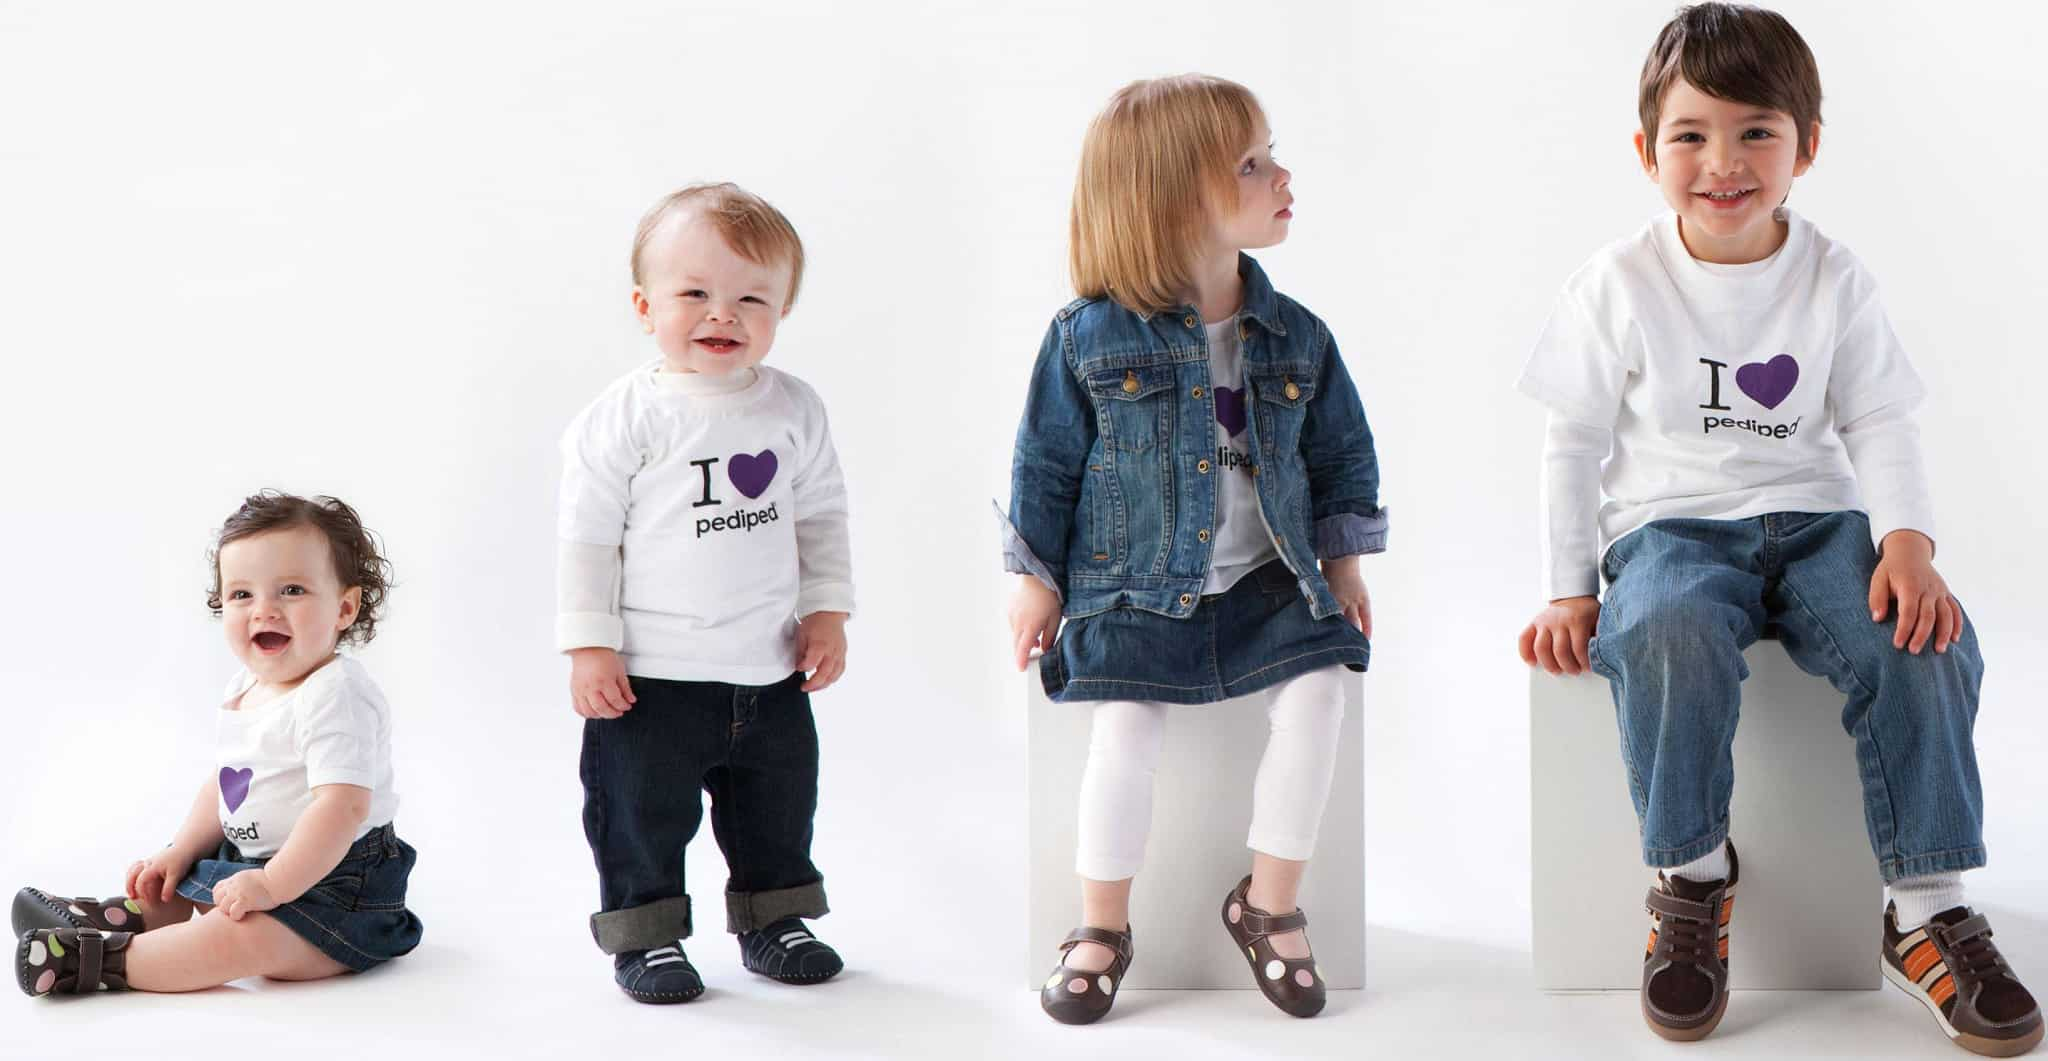 Fast Free shipping & Day Returns on Kids' clothing, shoes, and more!